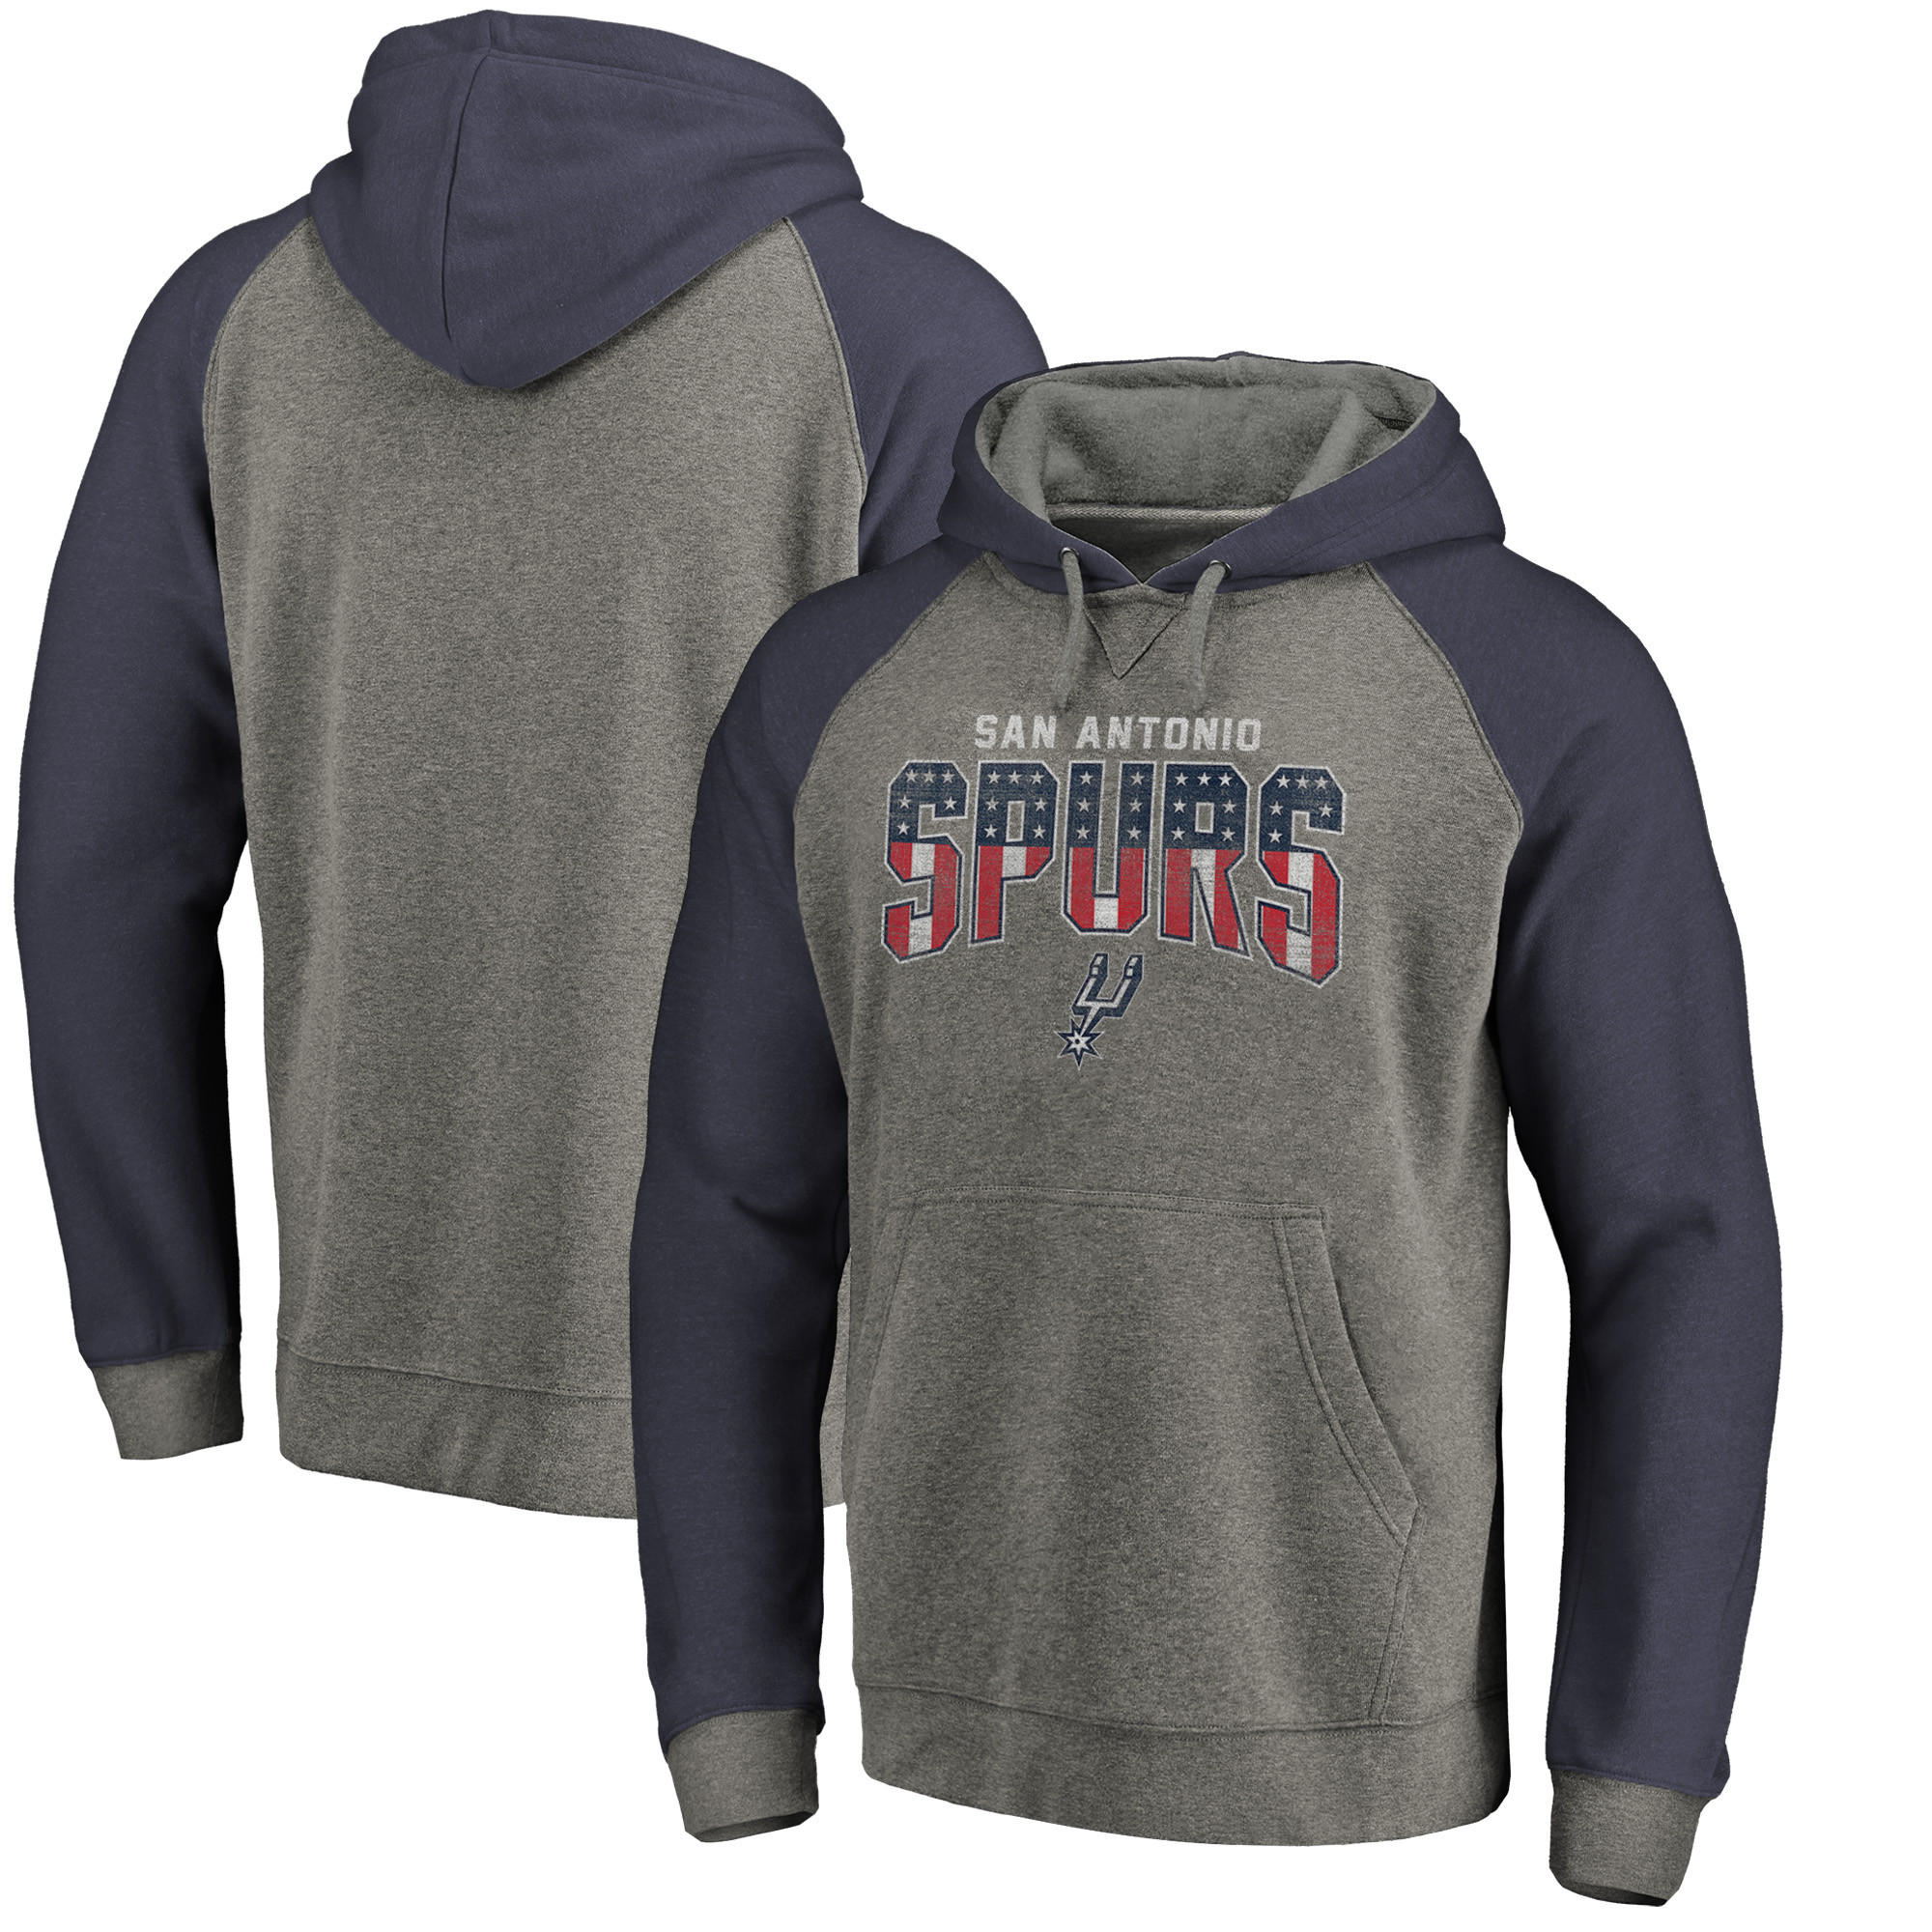 San Antonio Spurs Fanatics Branded Freedom Tri-Blend Pullover Hoodie - Heathered Gray